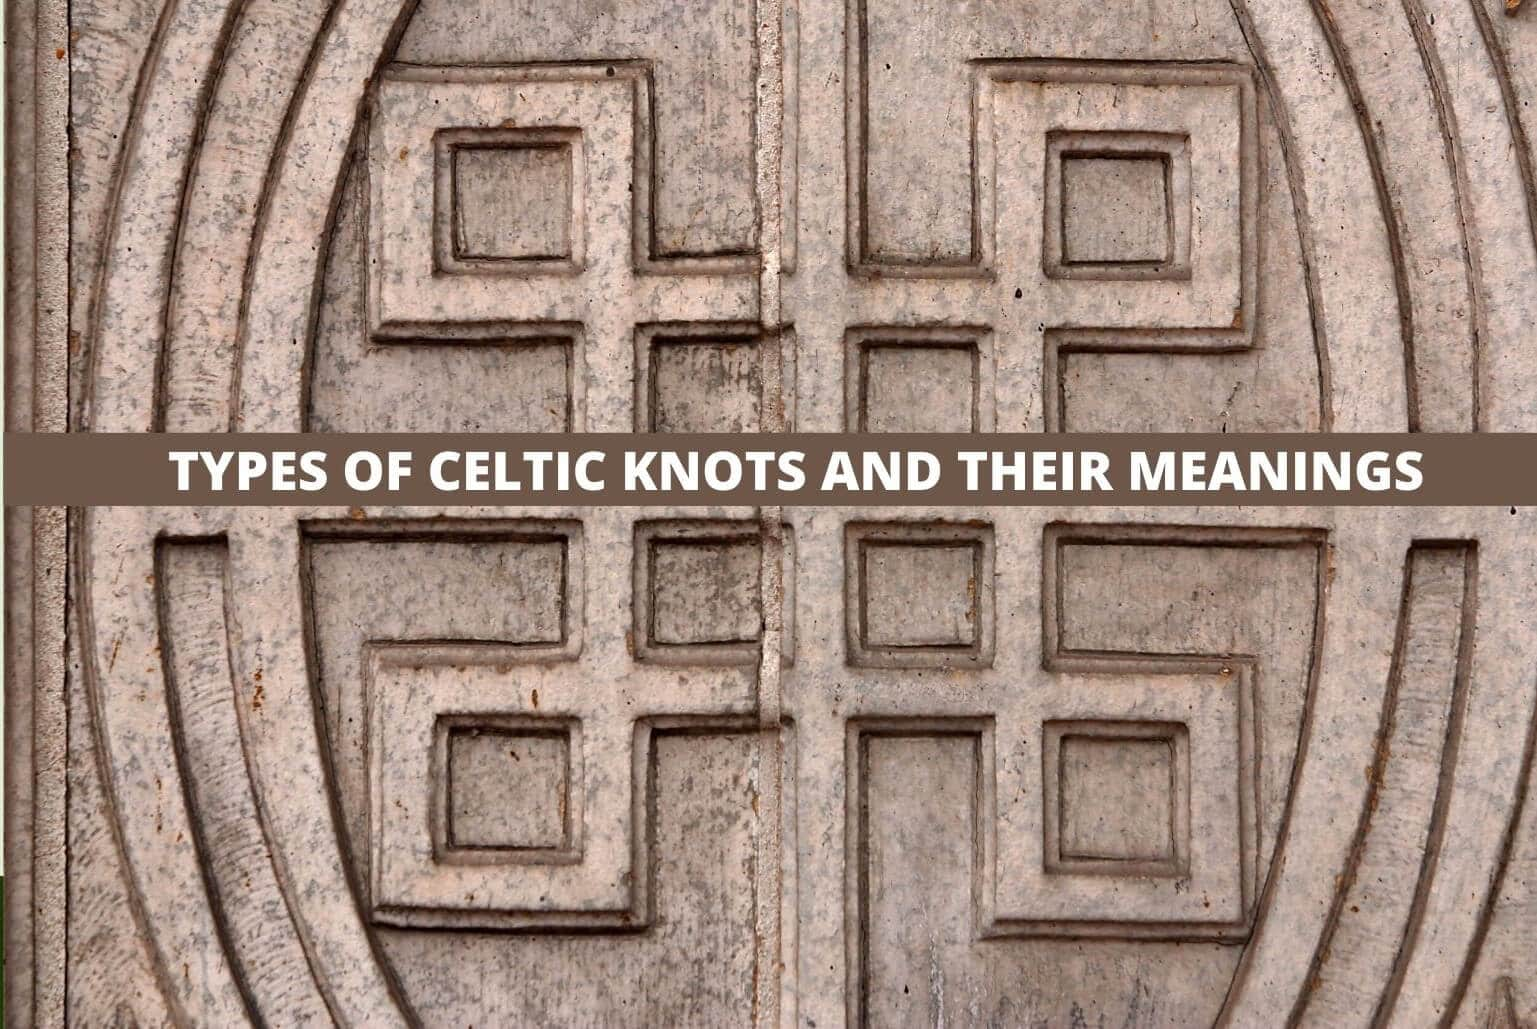 Types and meanings of celtic knots